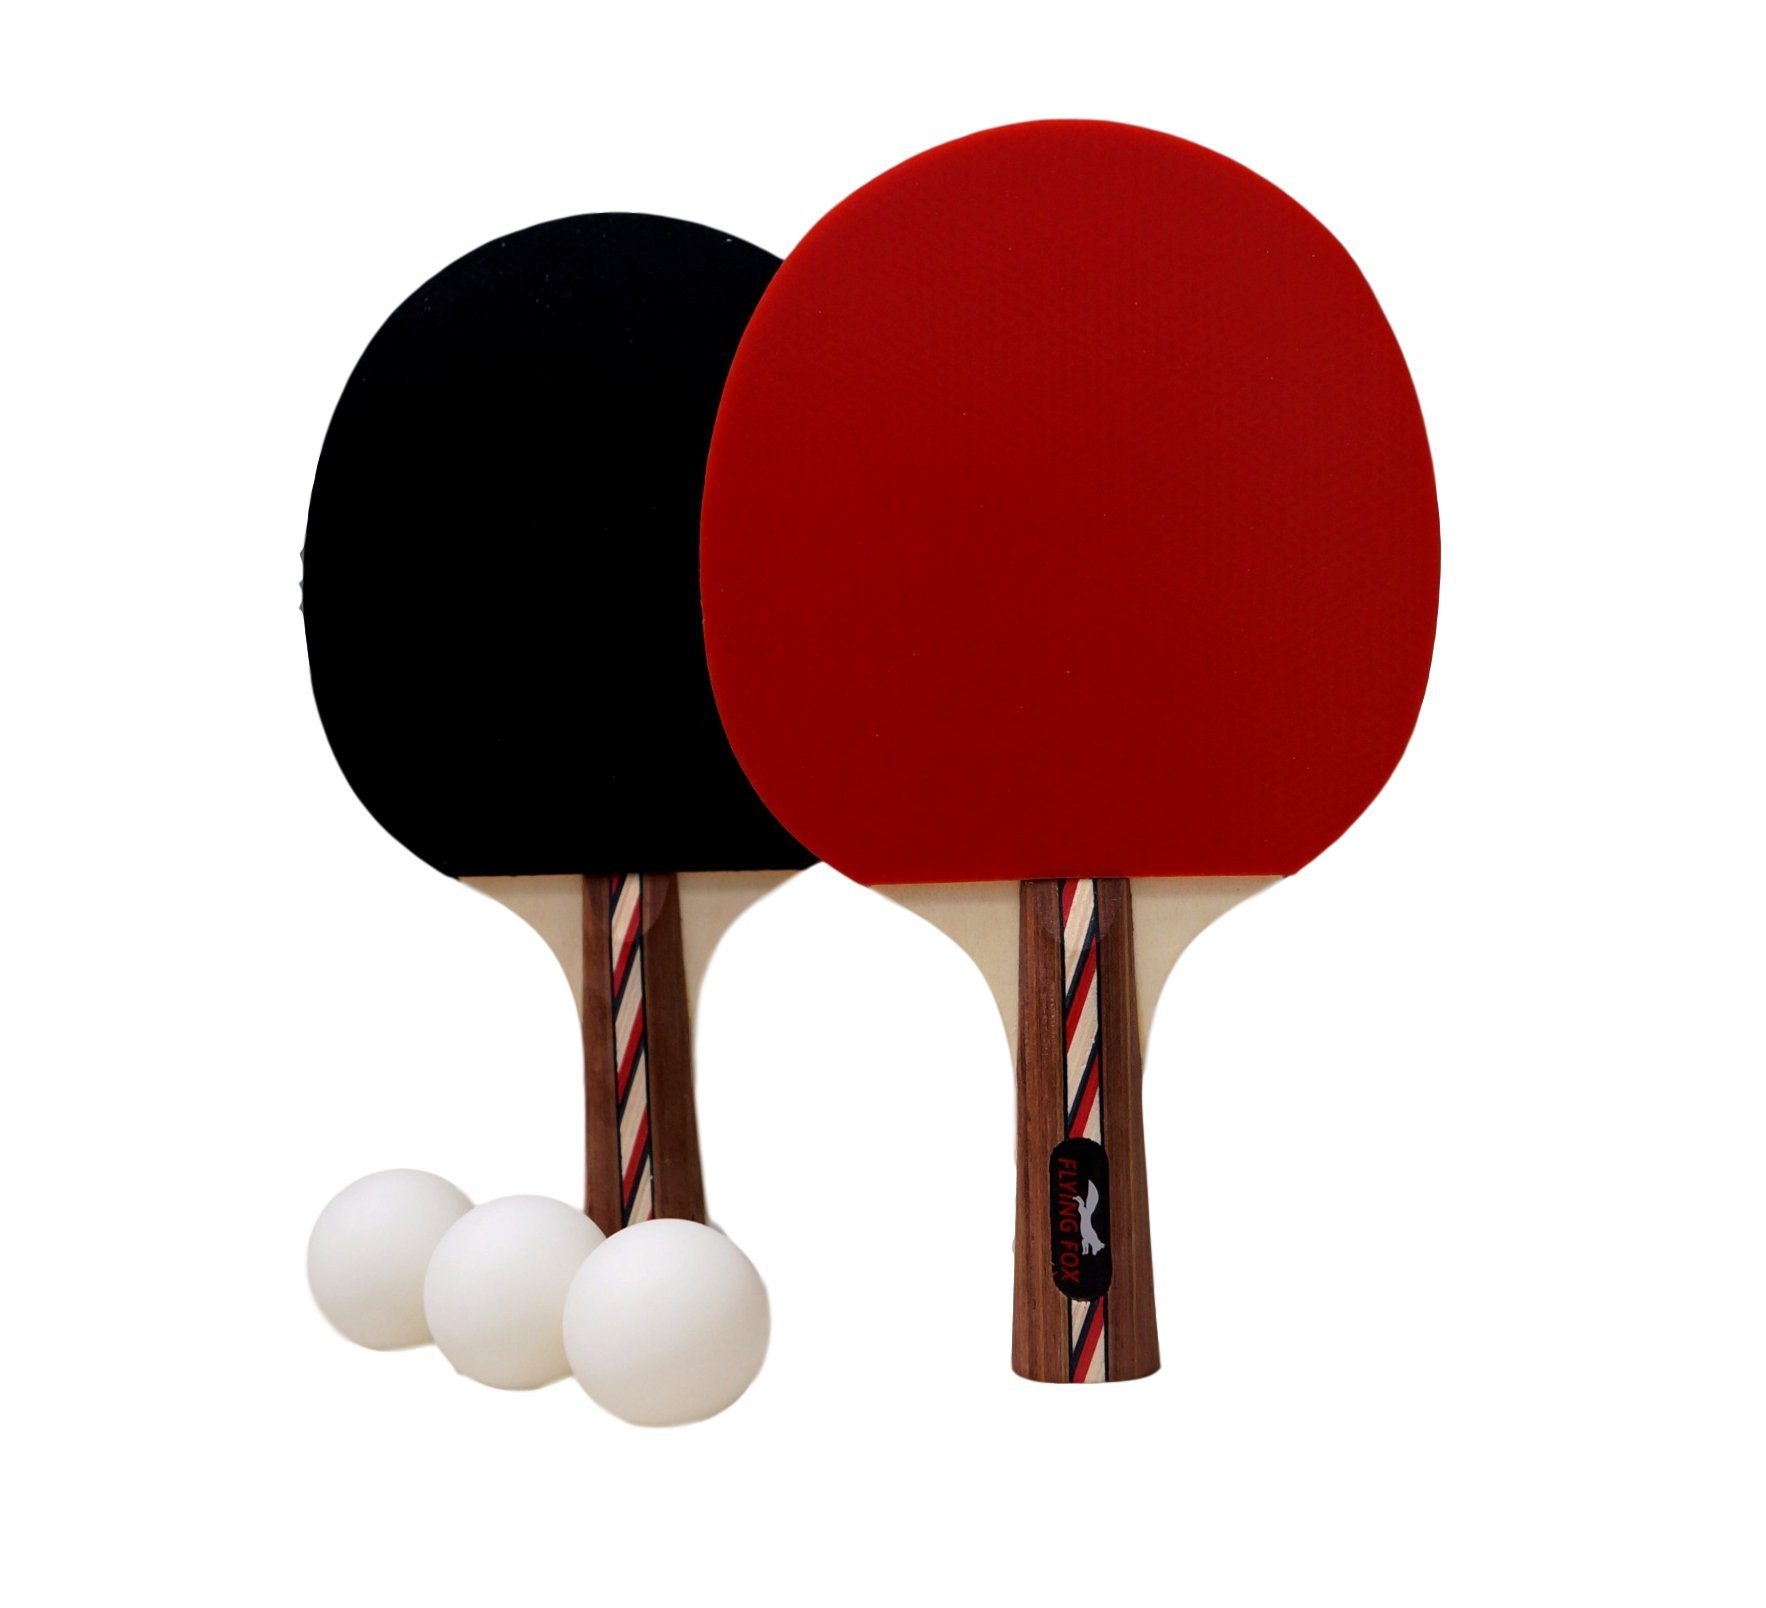 Table Tennis & Ping Pong Paddles Set with Carry Case - Professional Quality Racket with Flared Wood Handle for Novice to Semi-Pro by Flying Fox Paddles